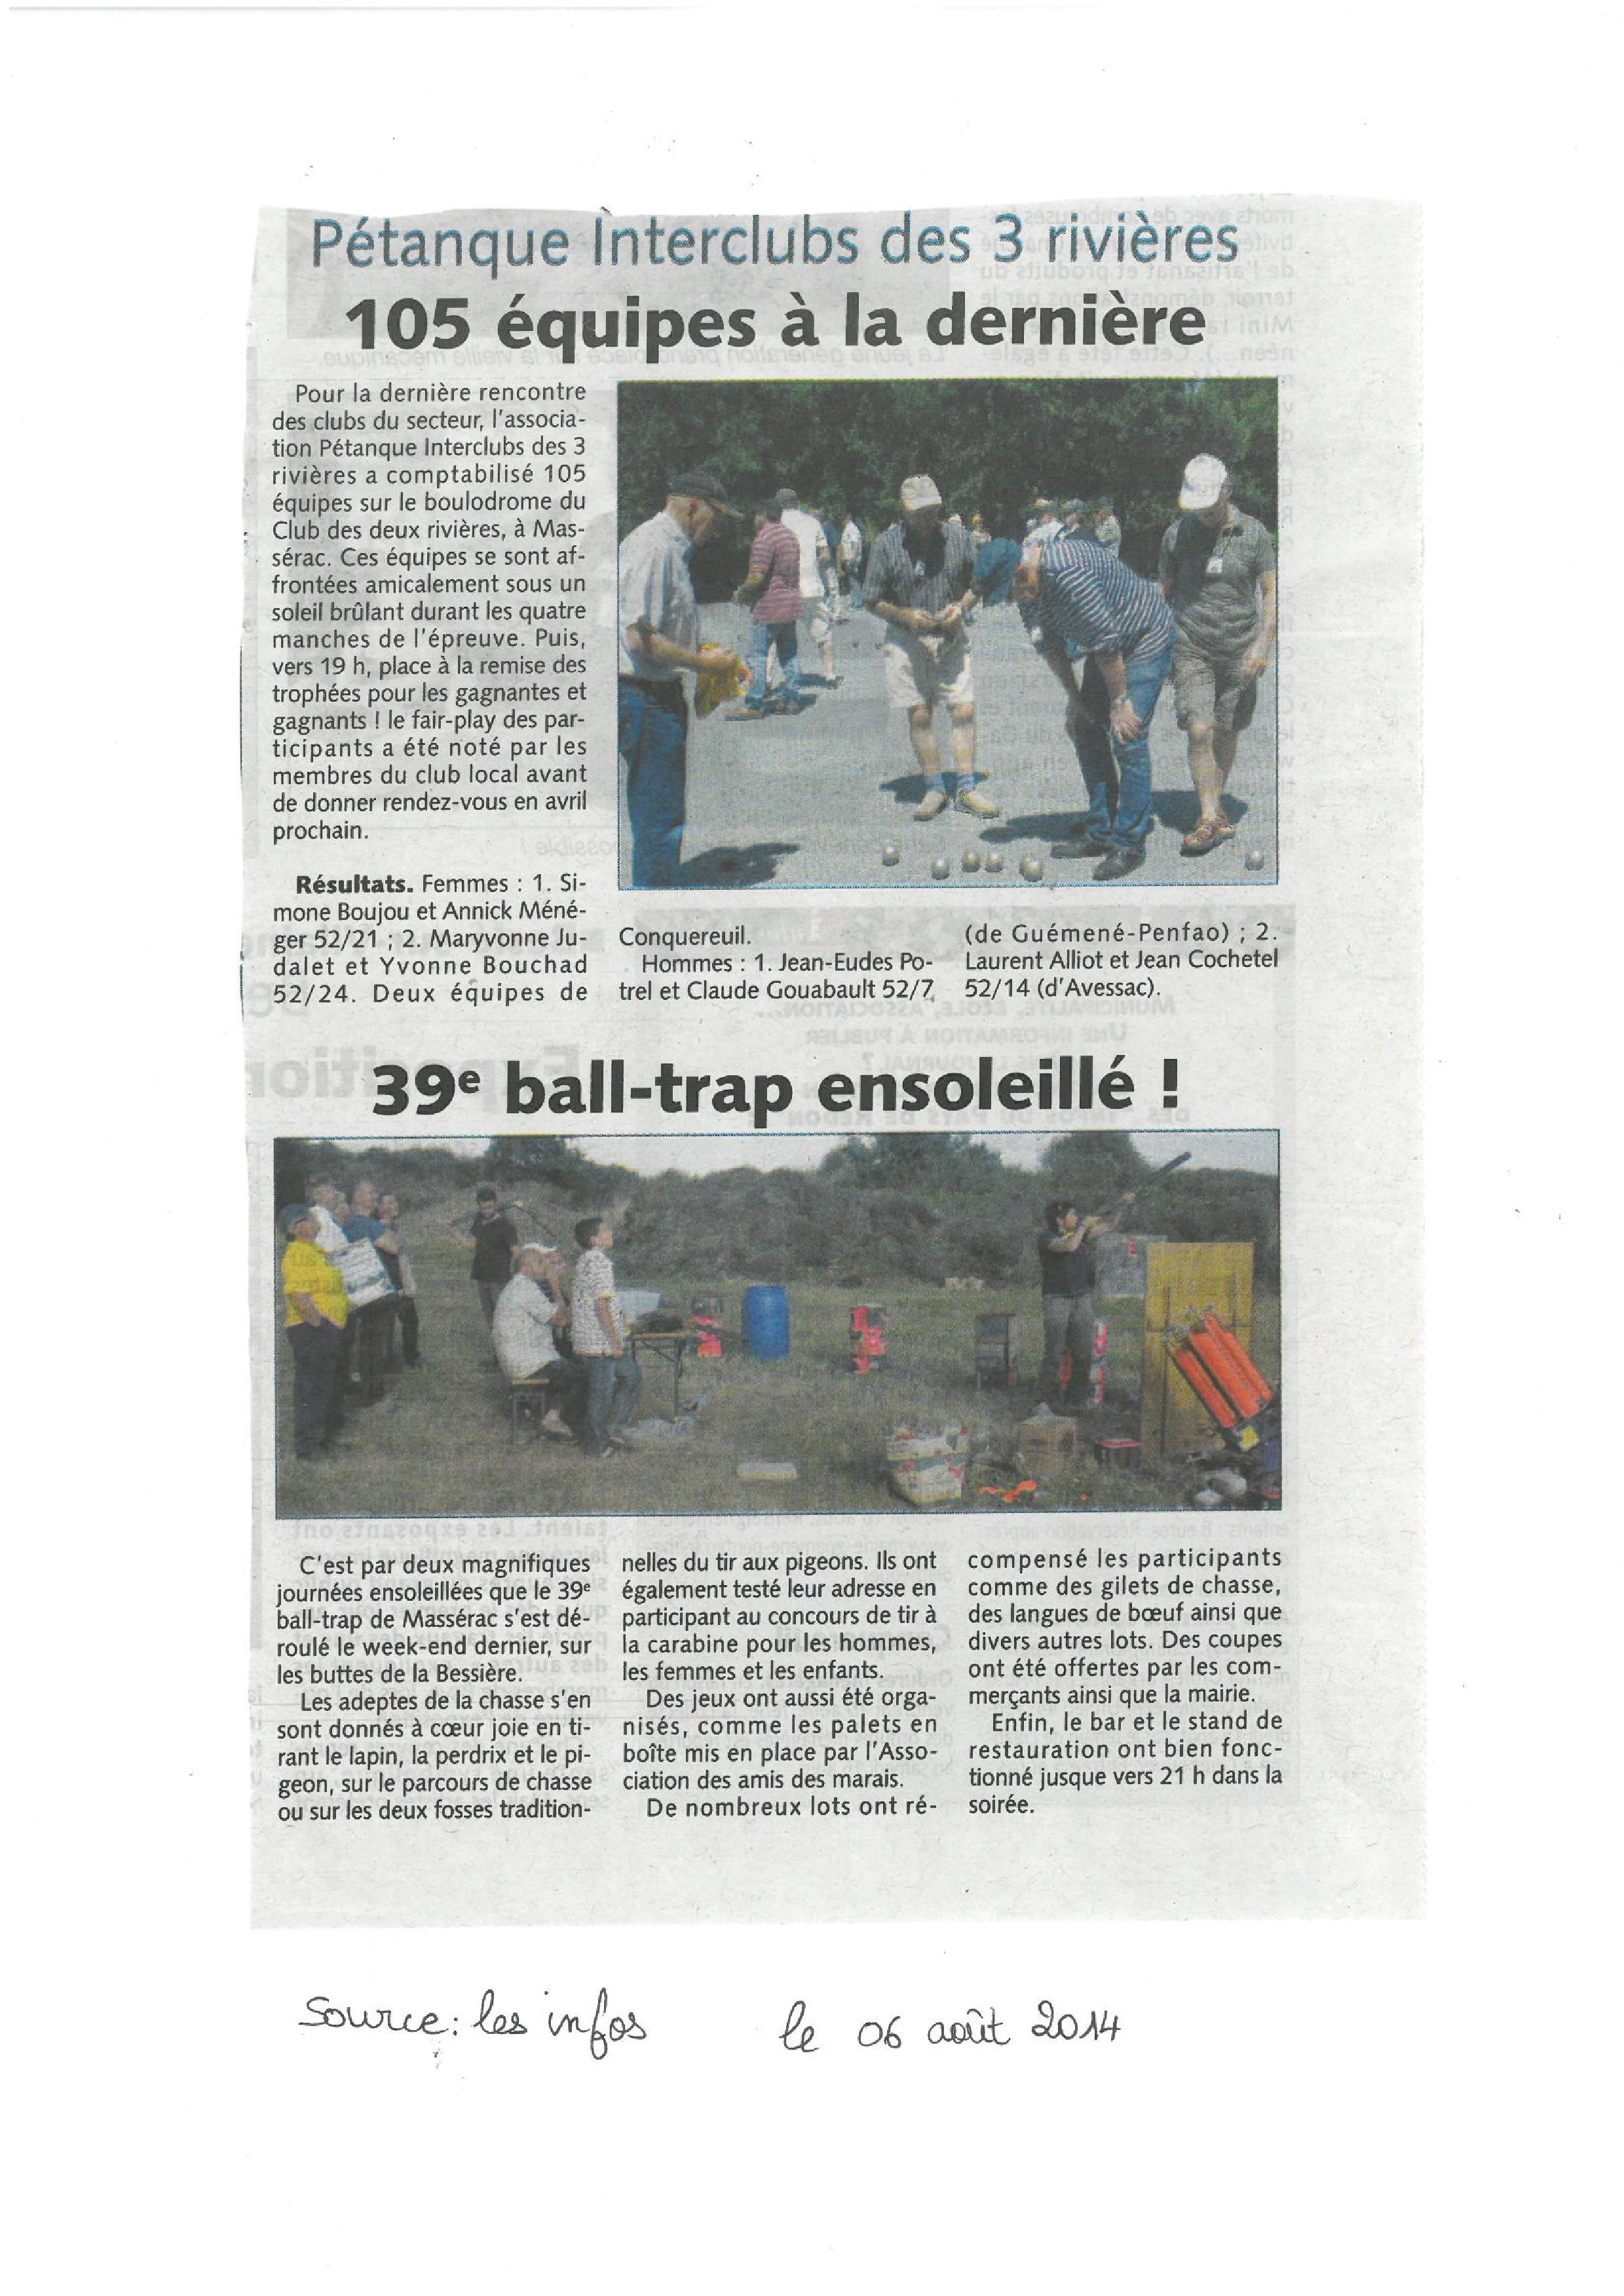 06-09-2014-les-infos-page-001